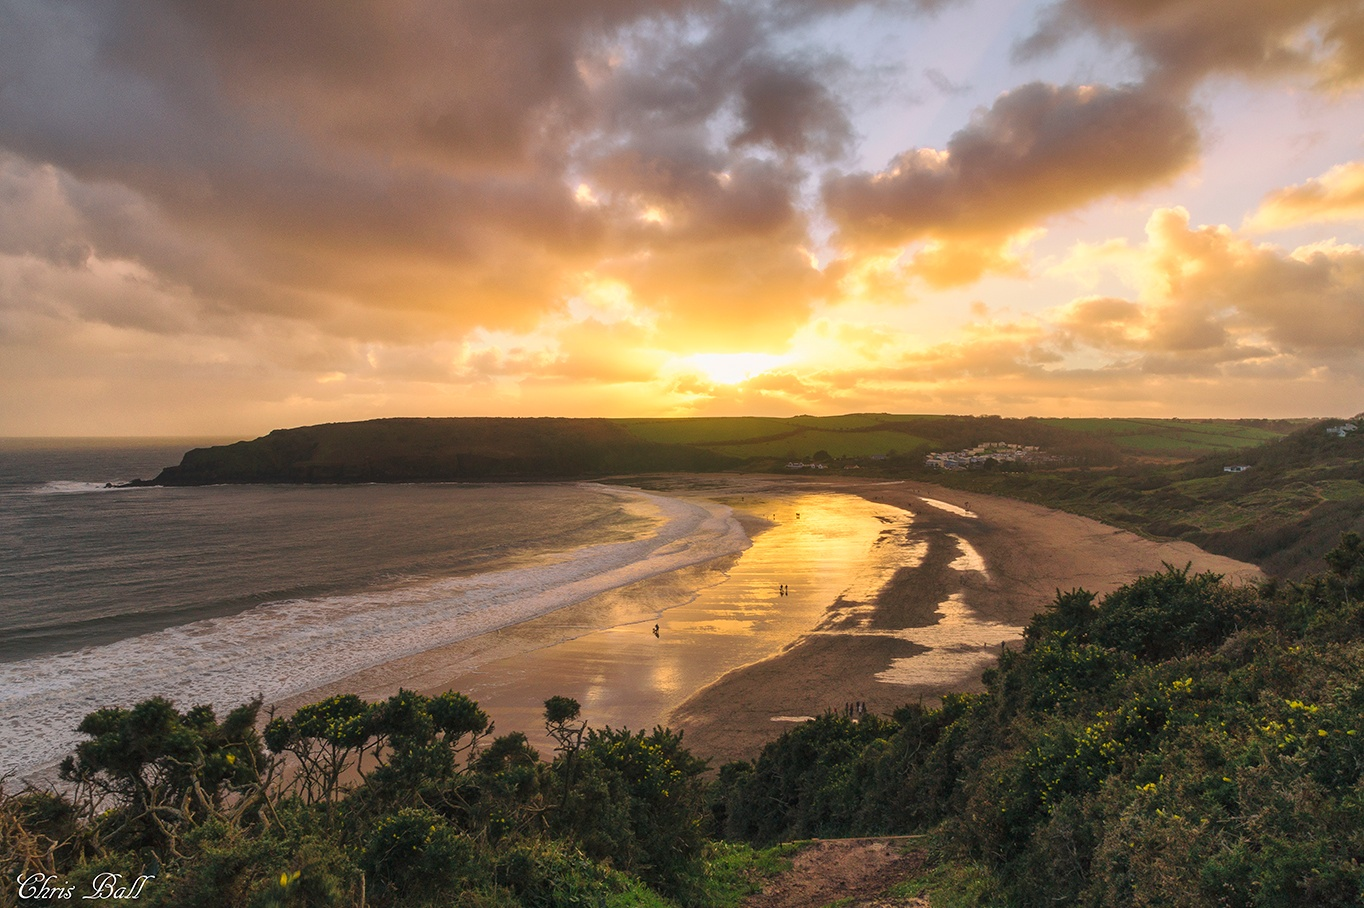 Freshwater East by Chris Ball